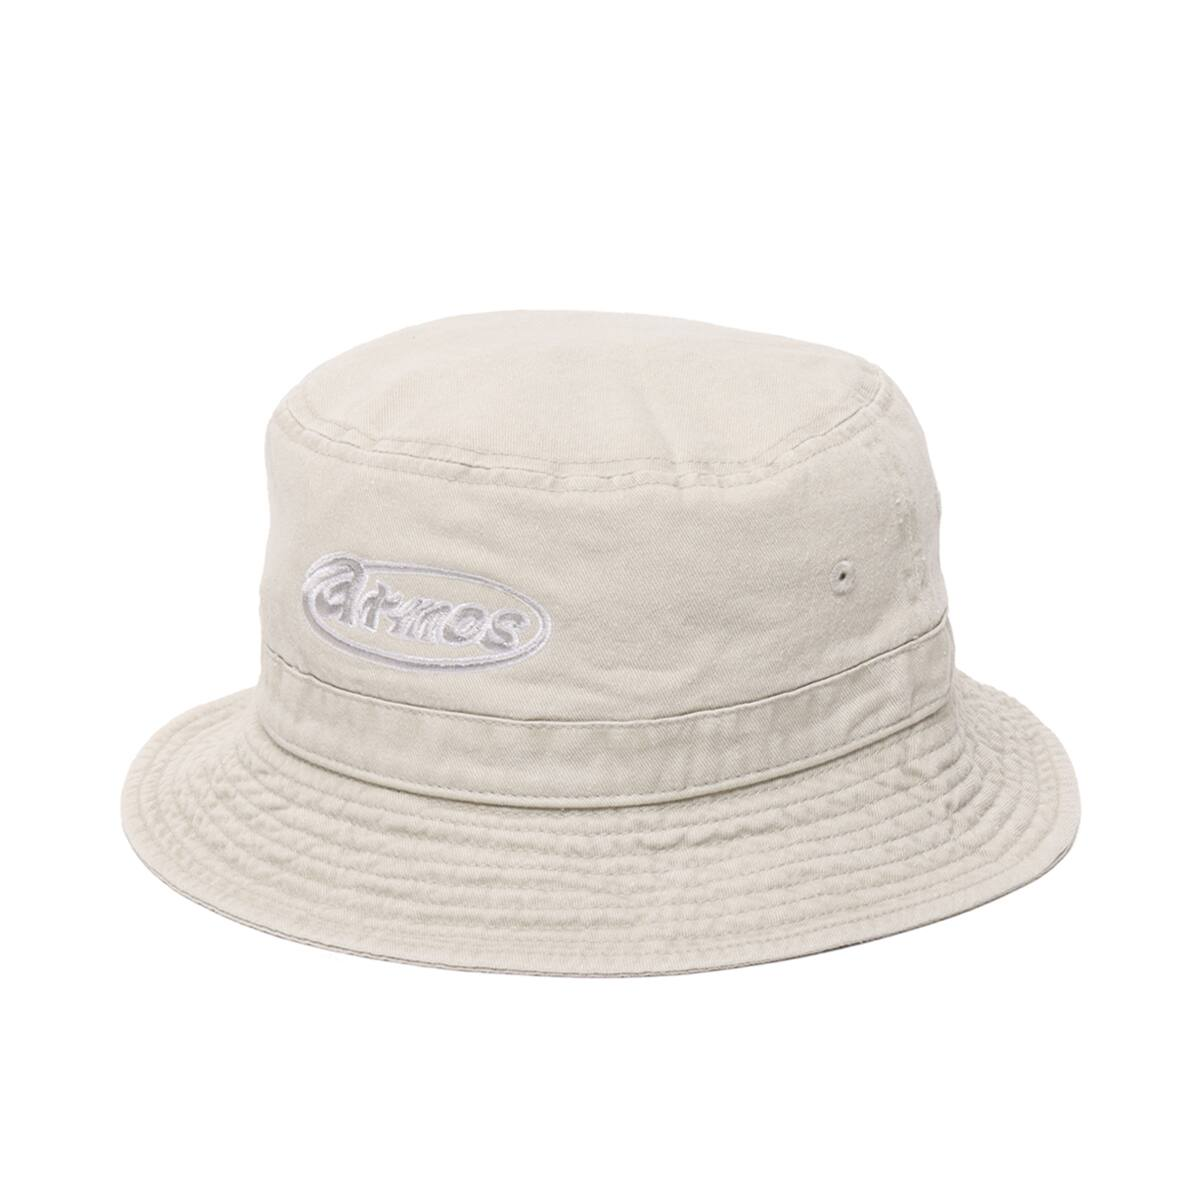 atmos CLASSIC A BUCKET HAT SAND 21SP-I_photo_large